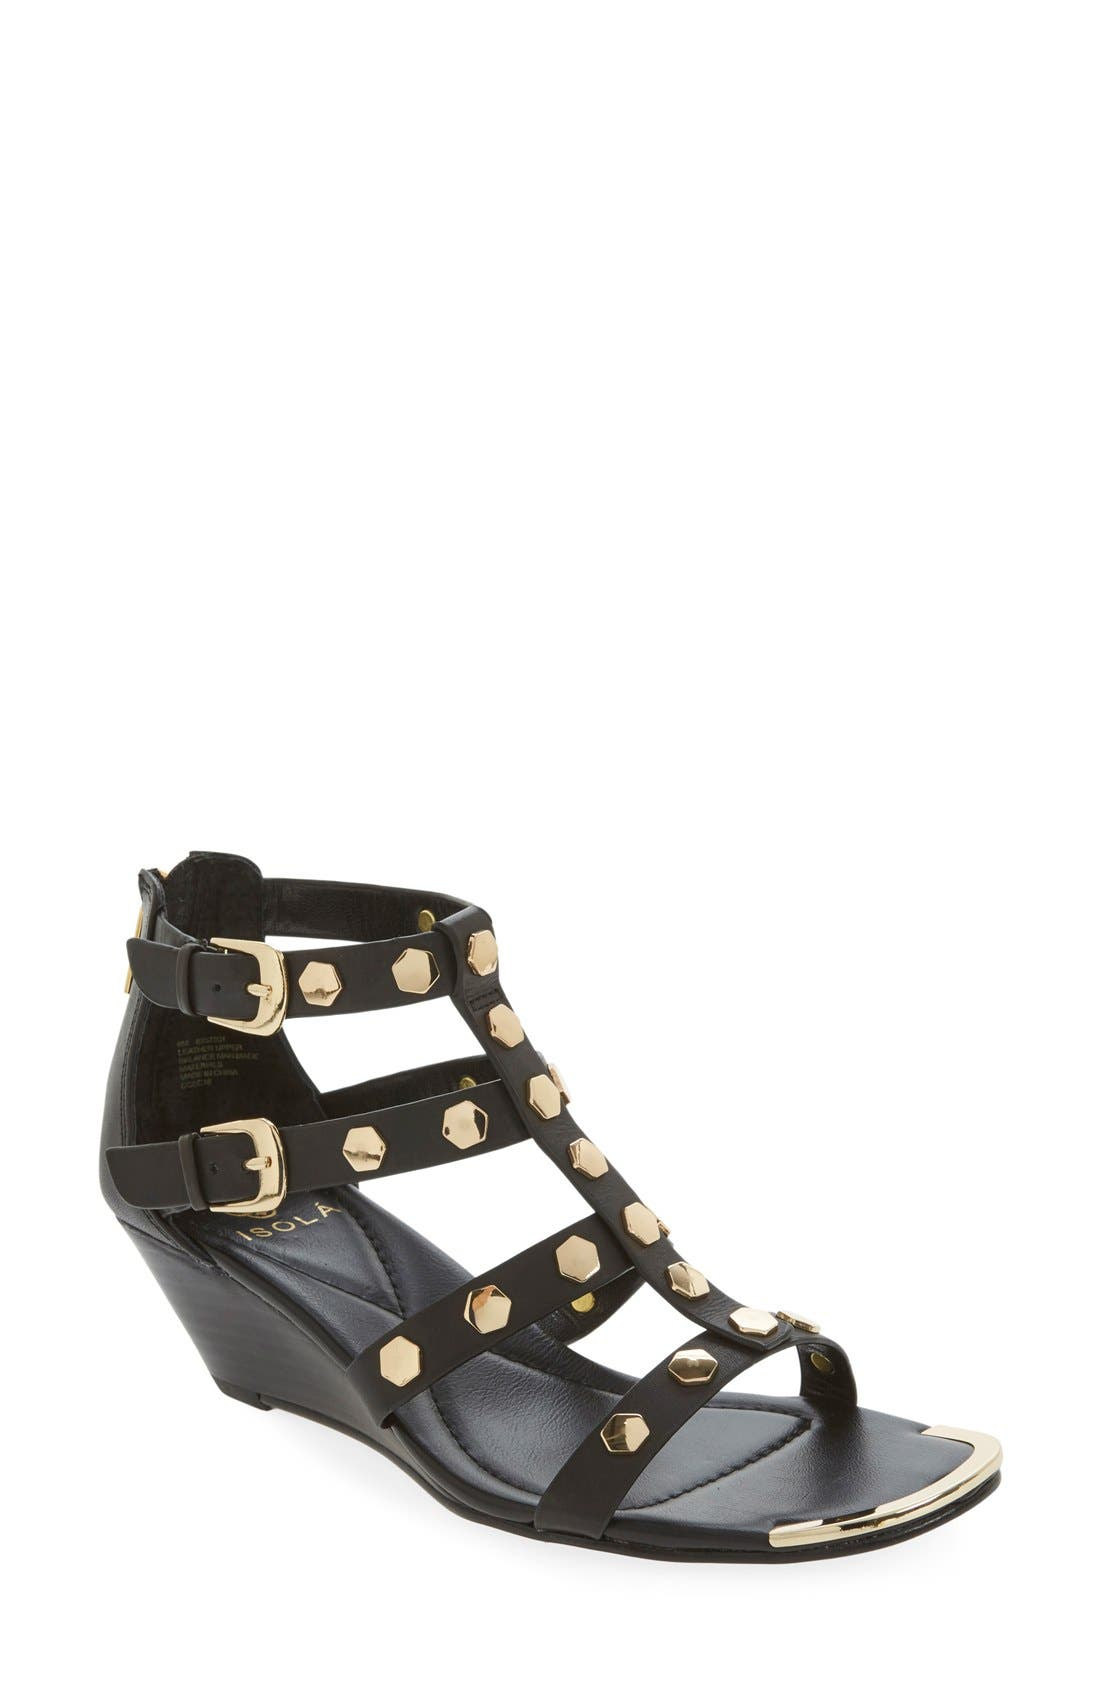 ISOLÁ 'Primrose' Wedge Sandal, Main, color, 001